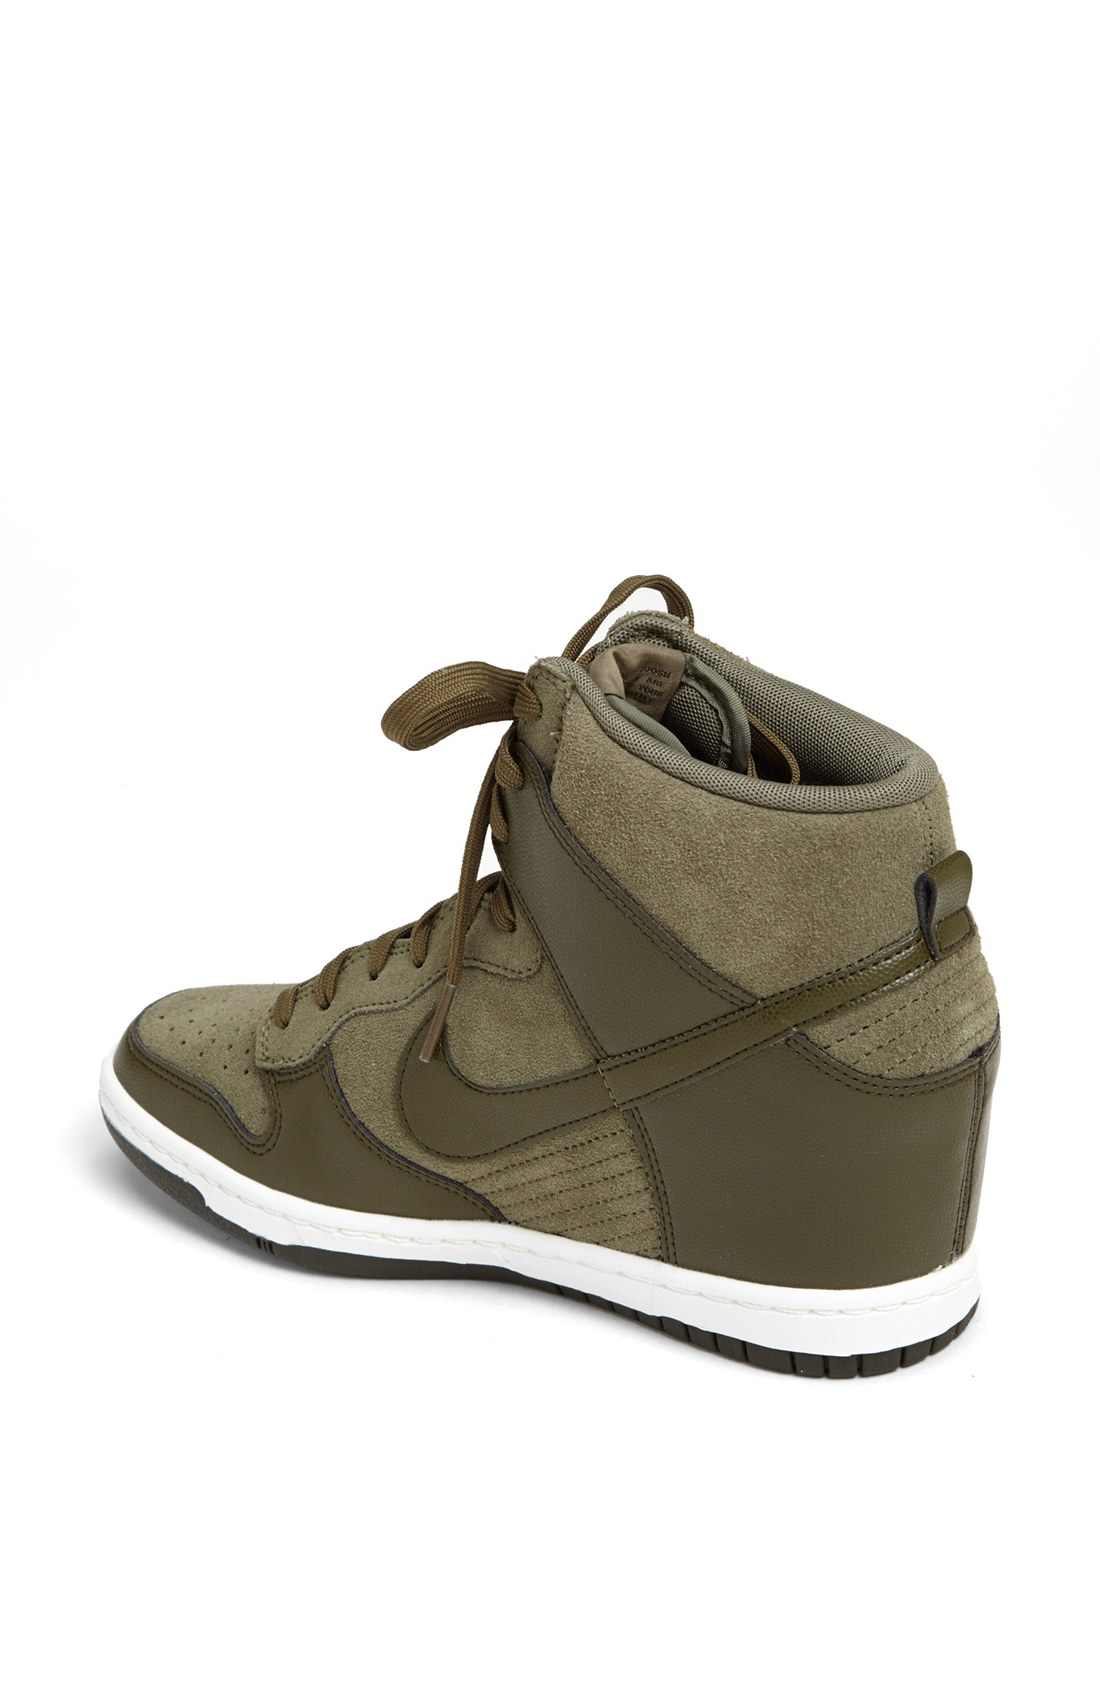 nike dunk sky hi wedge sneaker in gray lyst